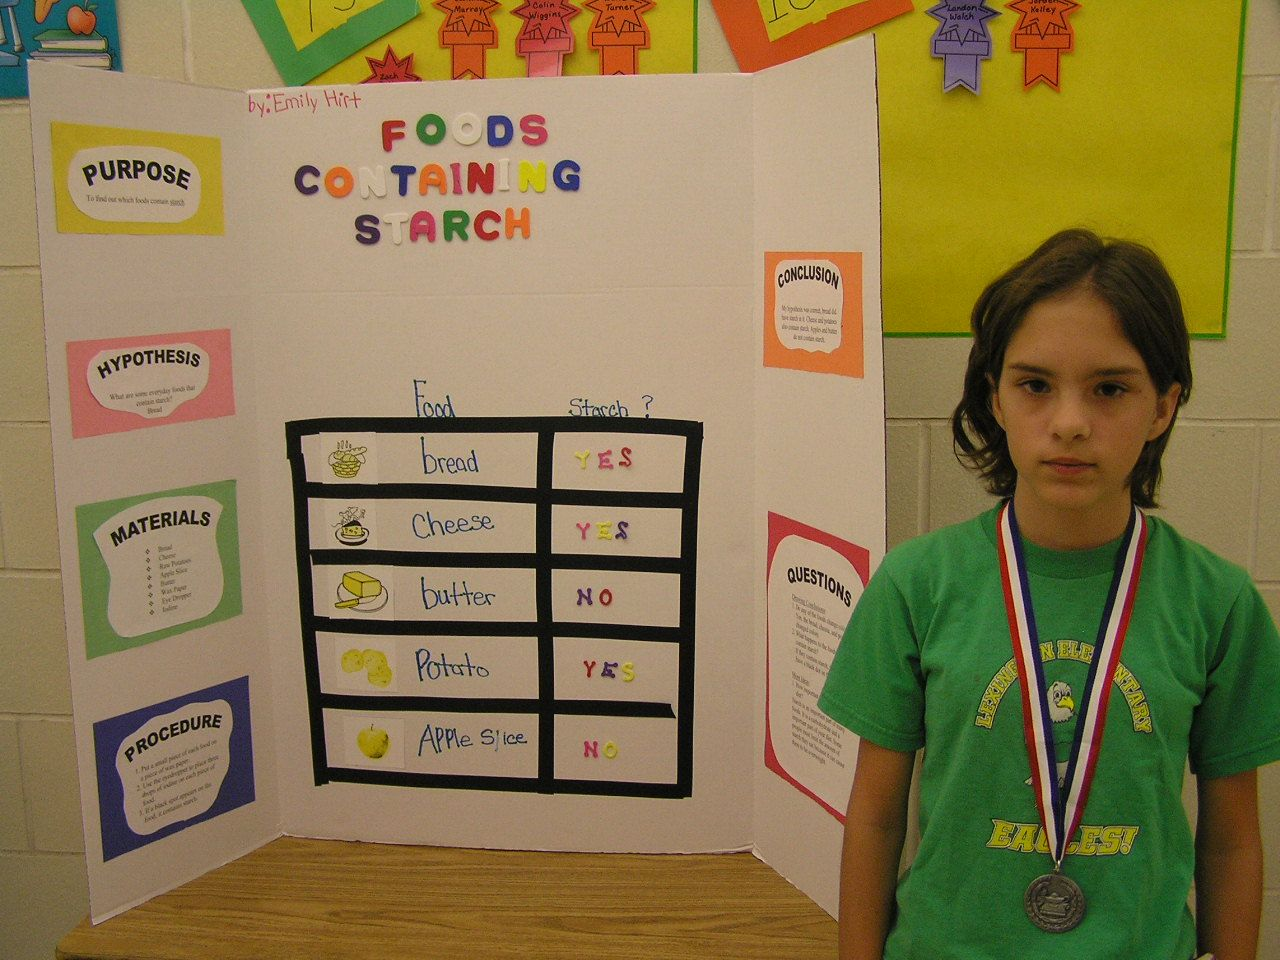 rd grade science projects science finally discovers my rd 3rd grade science projects science finally discovers my 3rd grade science fair project